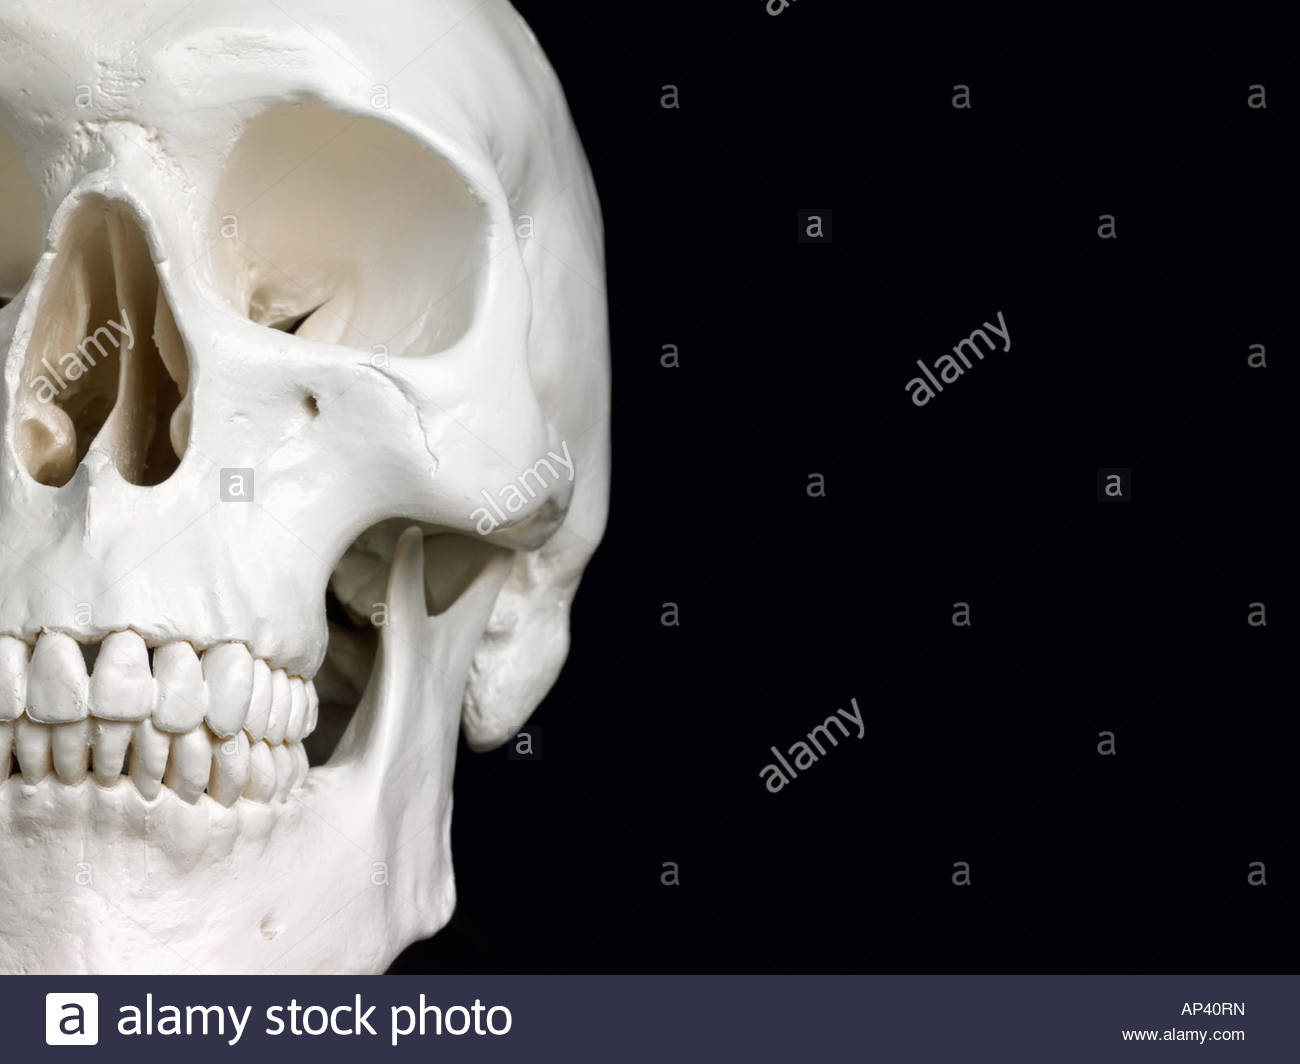 Half of a human skull - Stock Image